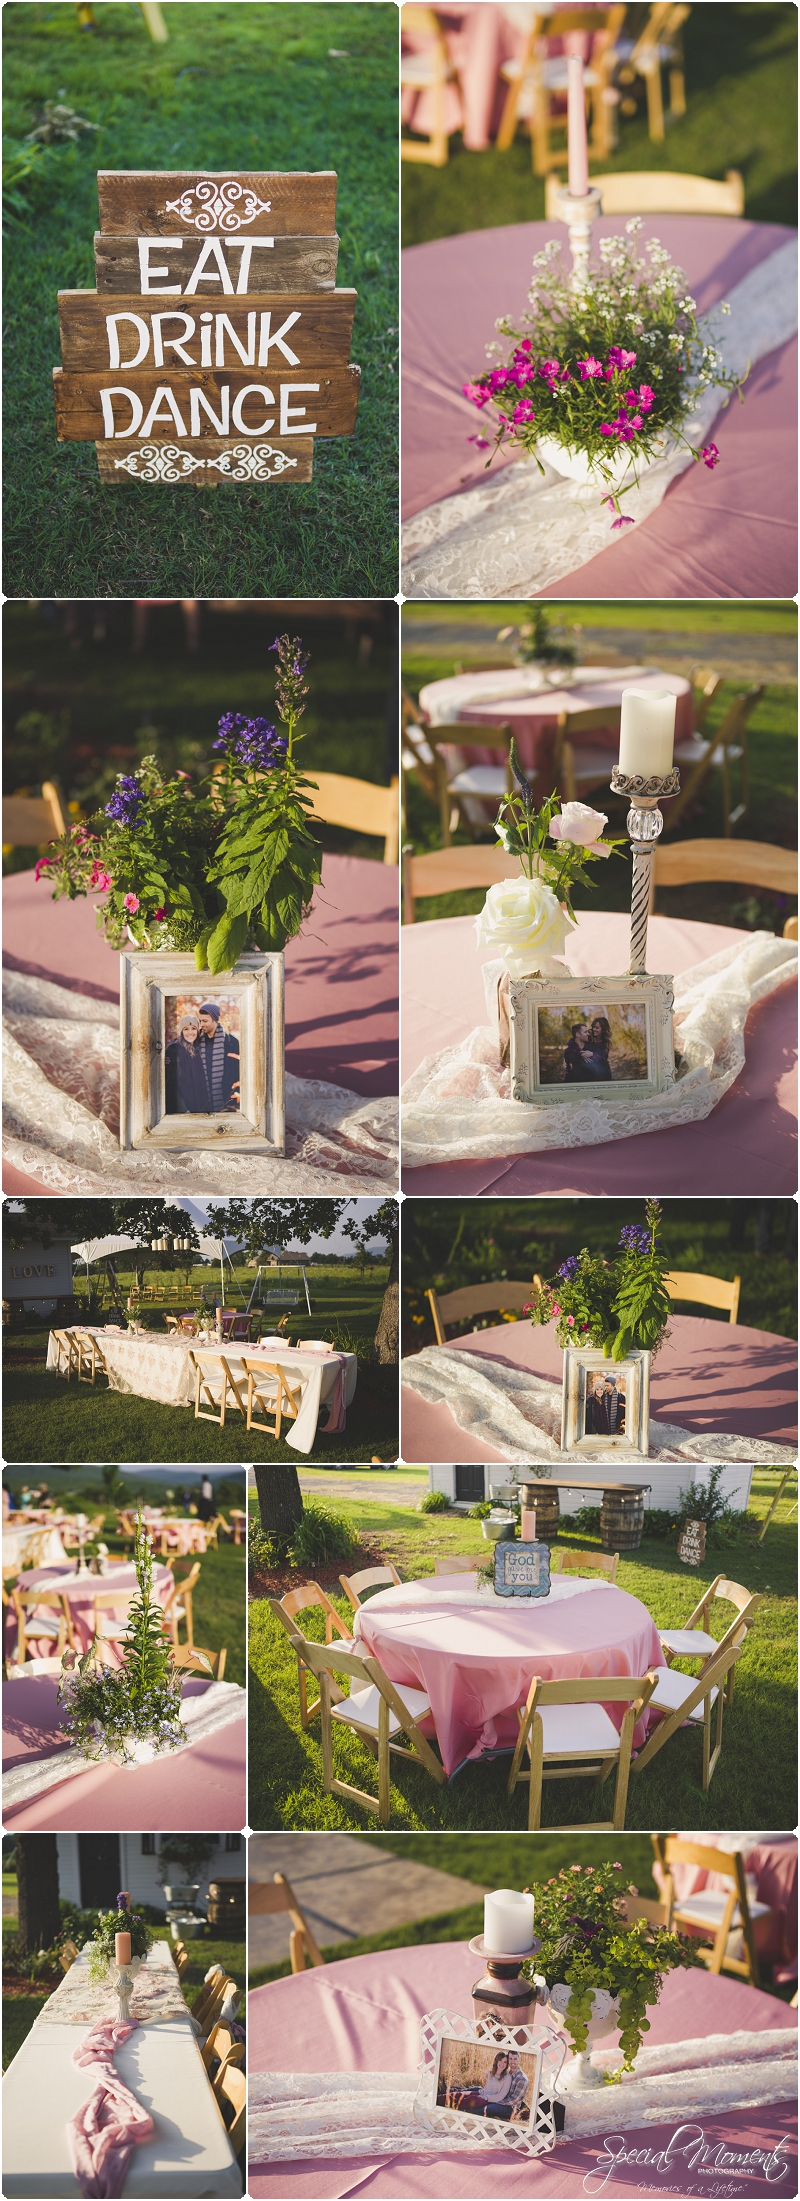 southern wedding ideas, oklahoma wedding photography, oklahoma wedding photographer_0079